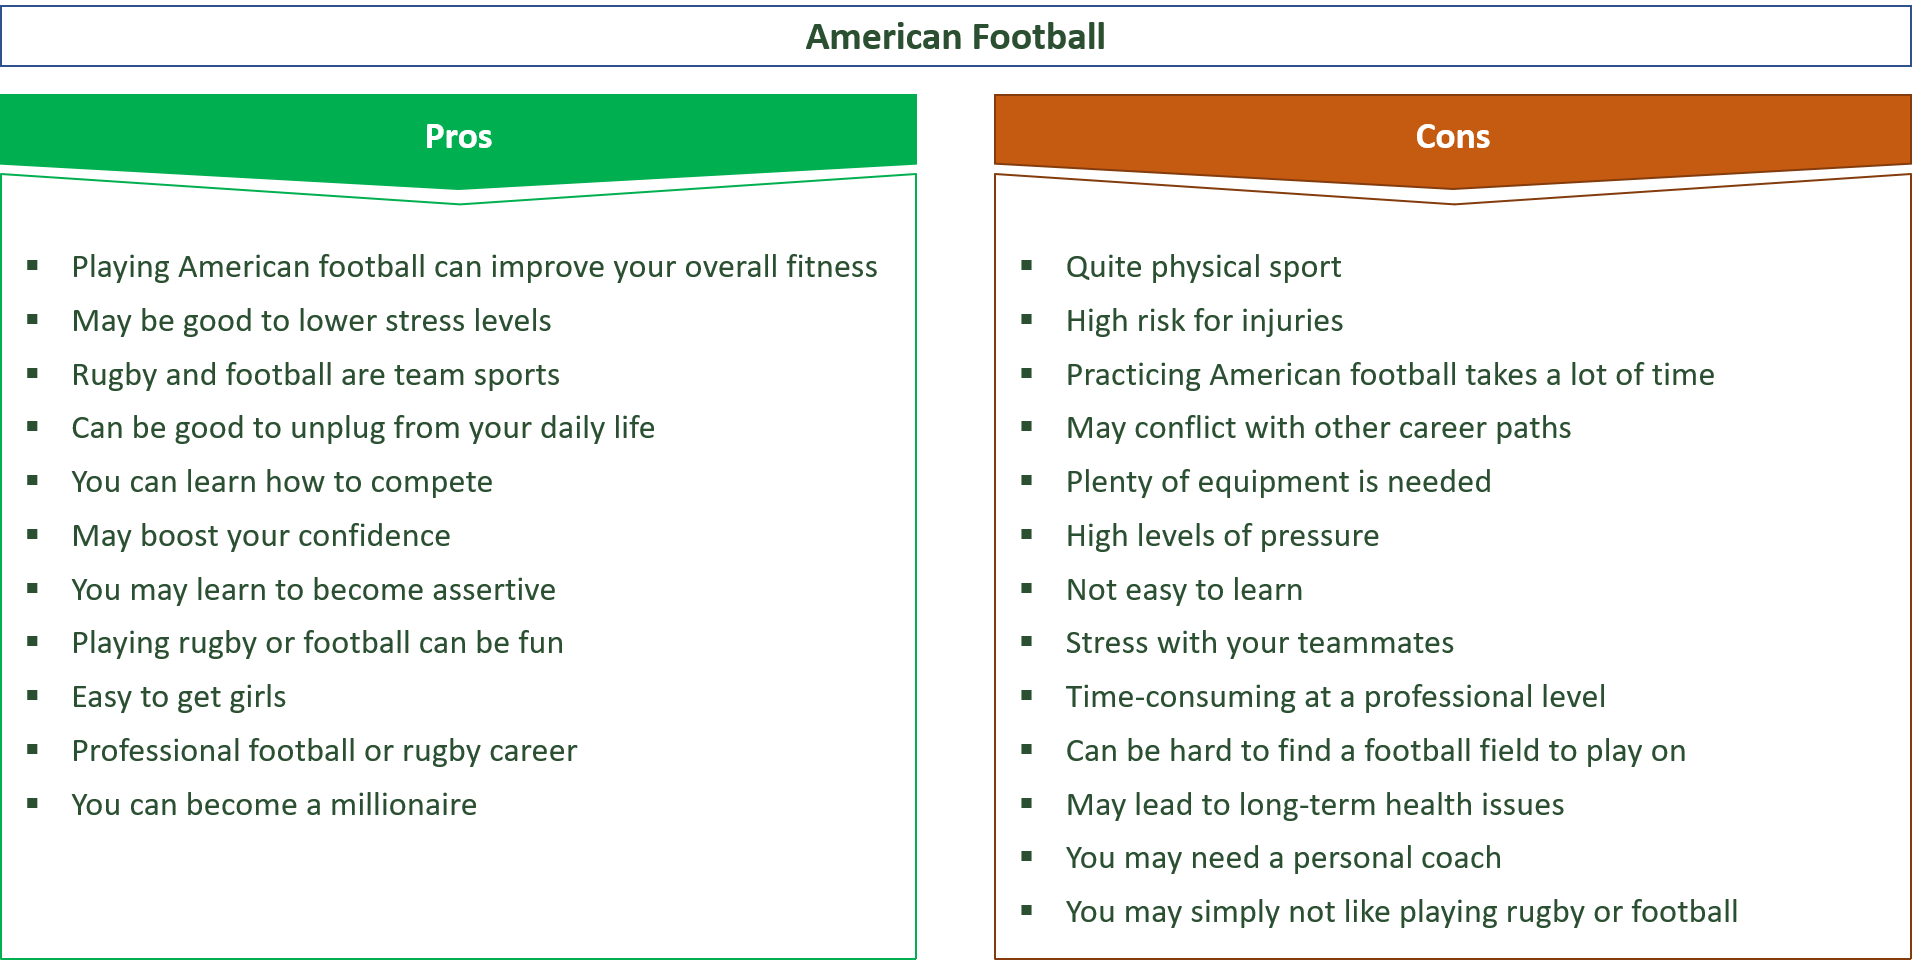 advantages and disadvantages of playing american football